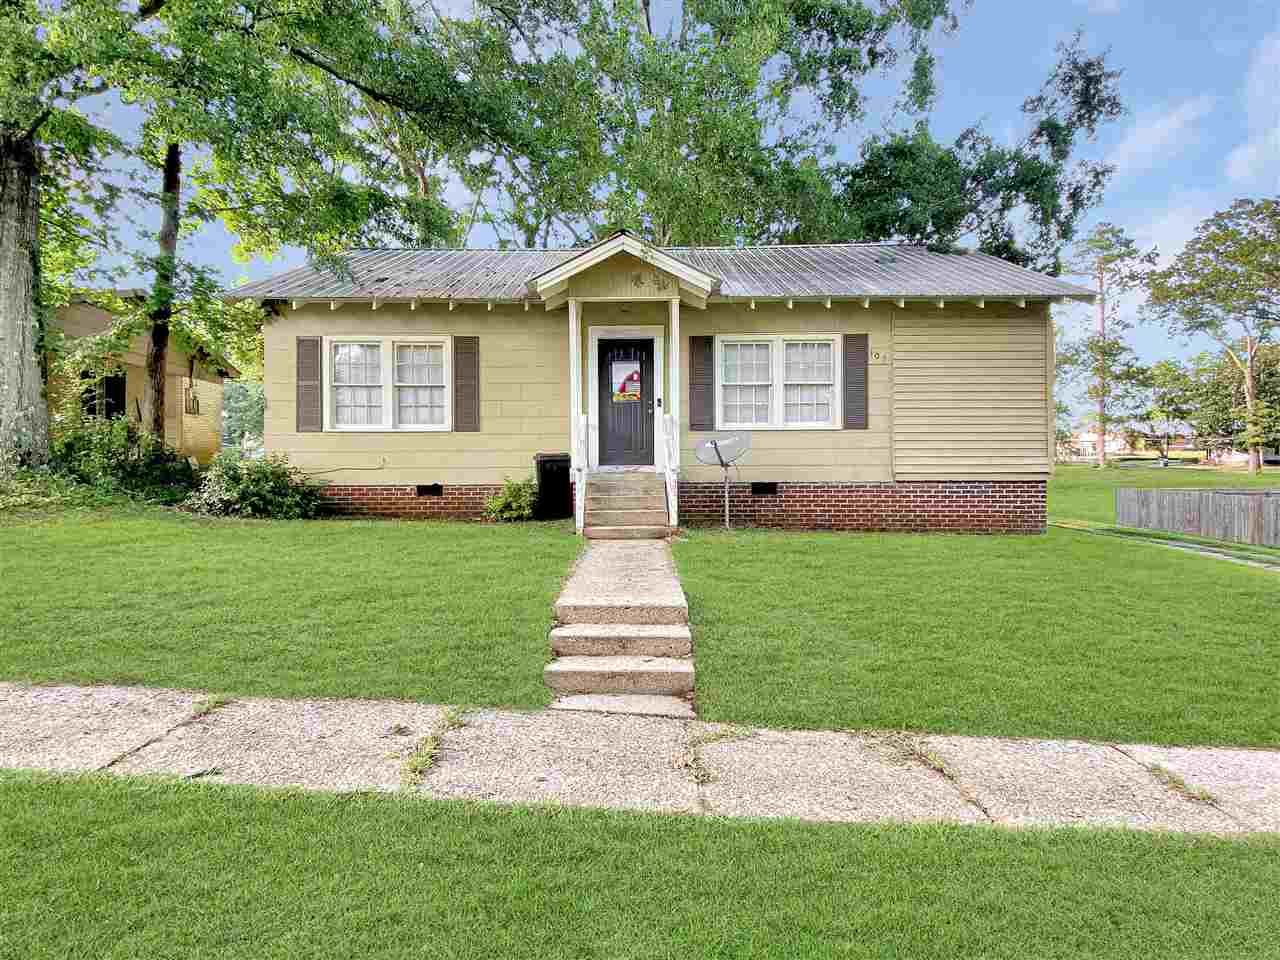 107 W DURR AVE, Mendenhall, MS 39114 - MLS#: 341697